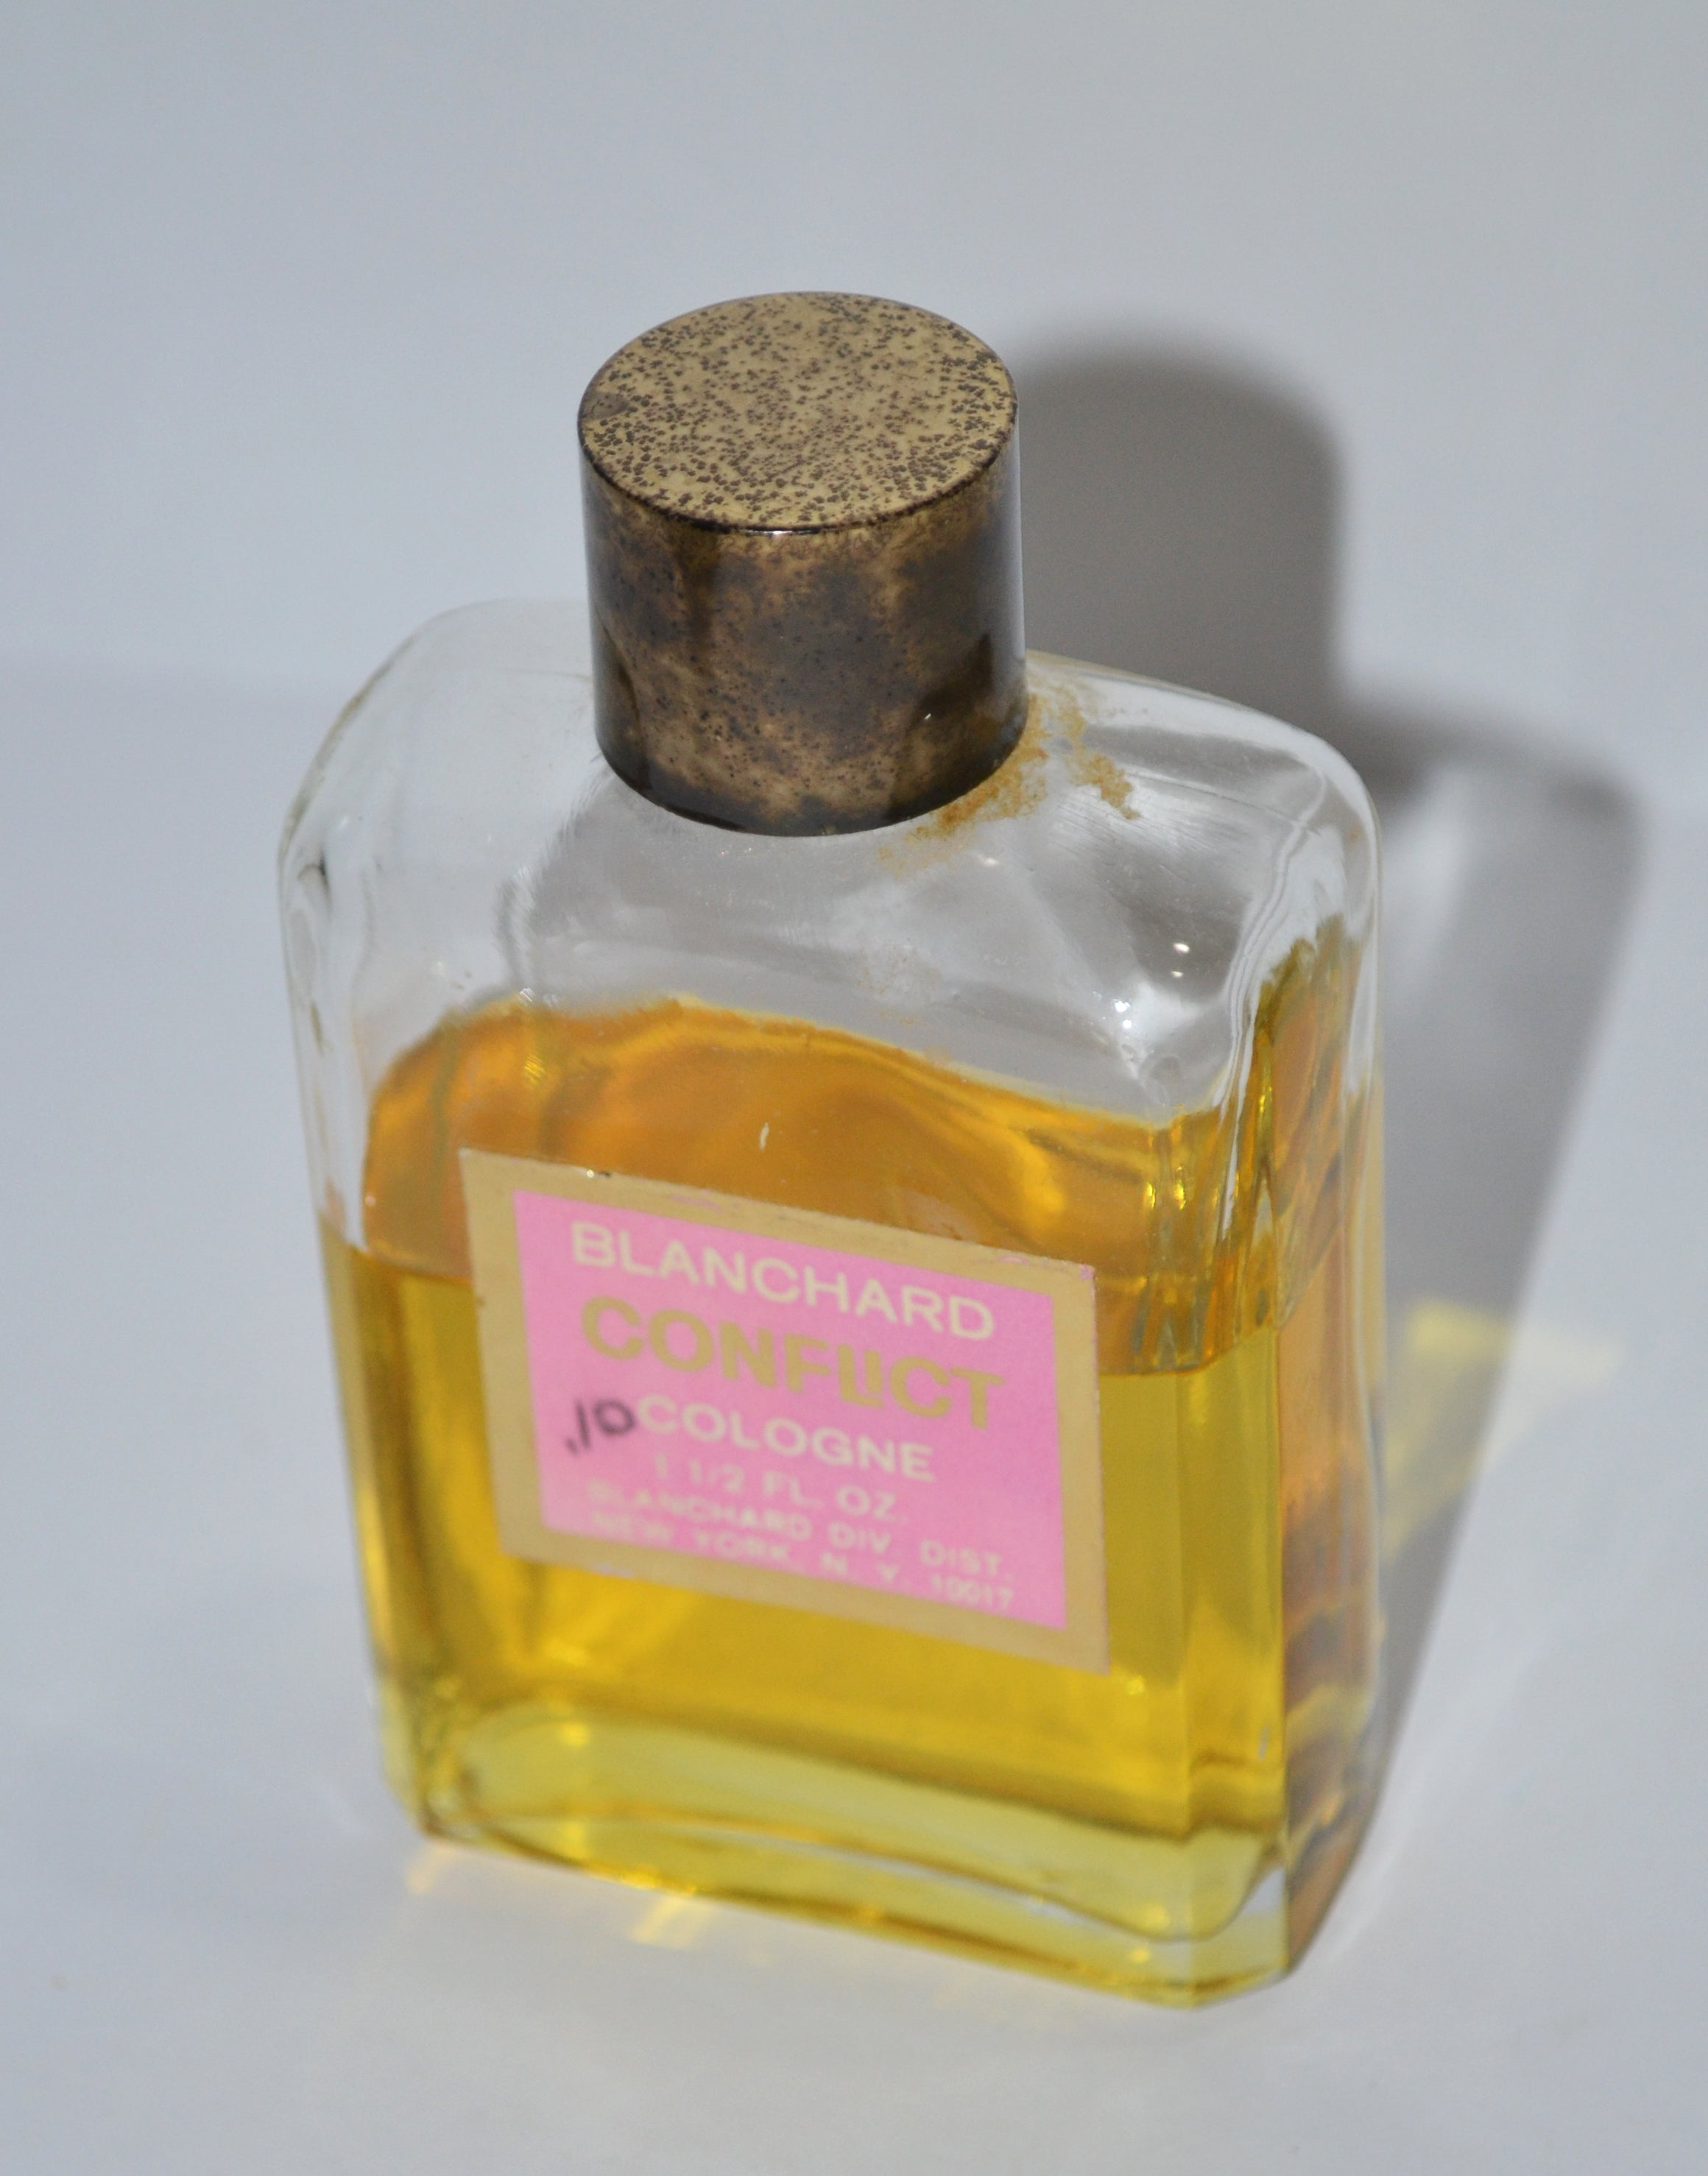 Vintage Conflict Cologne By Blanchard